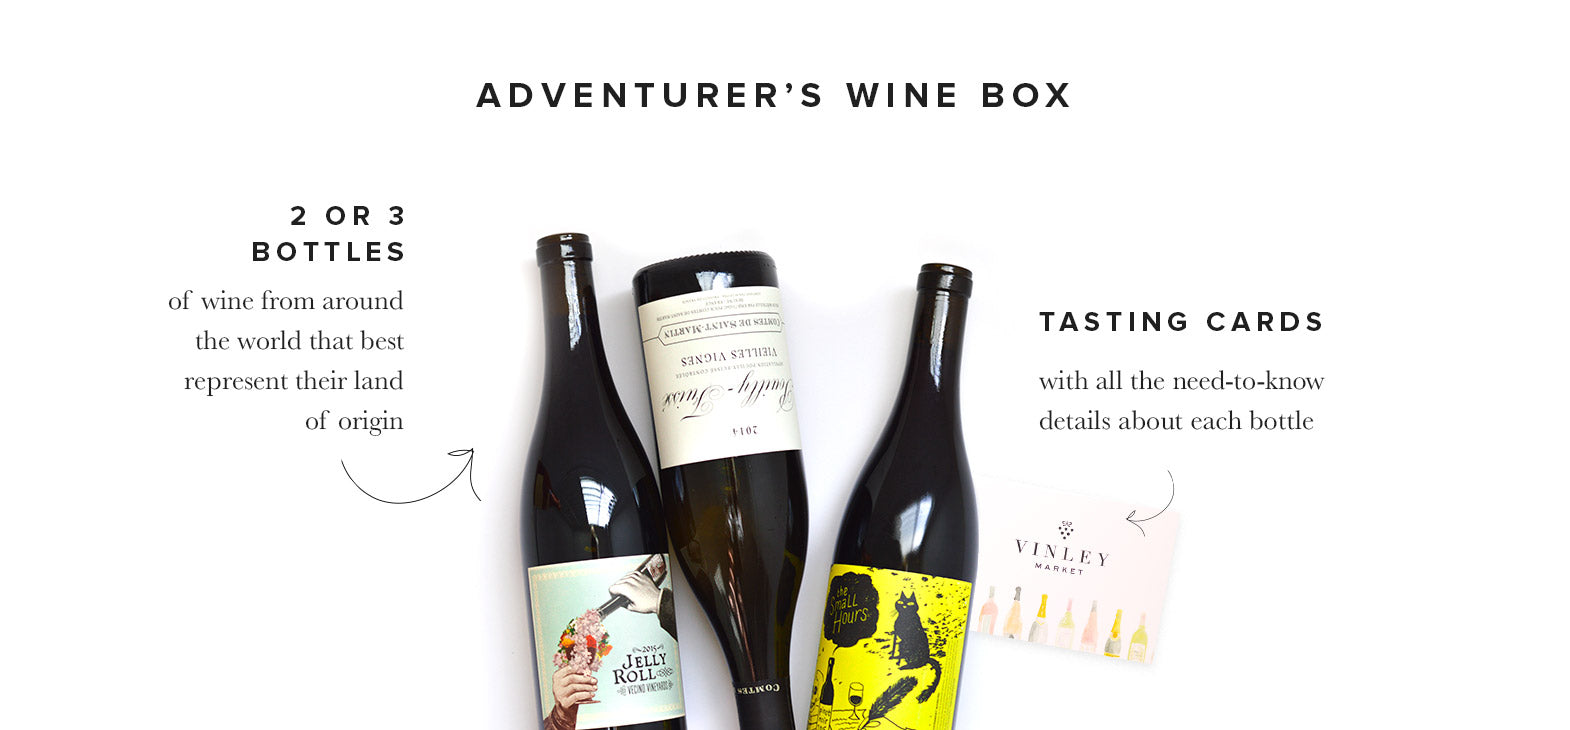 Vinley Adventurer's Wine Box